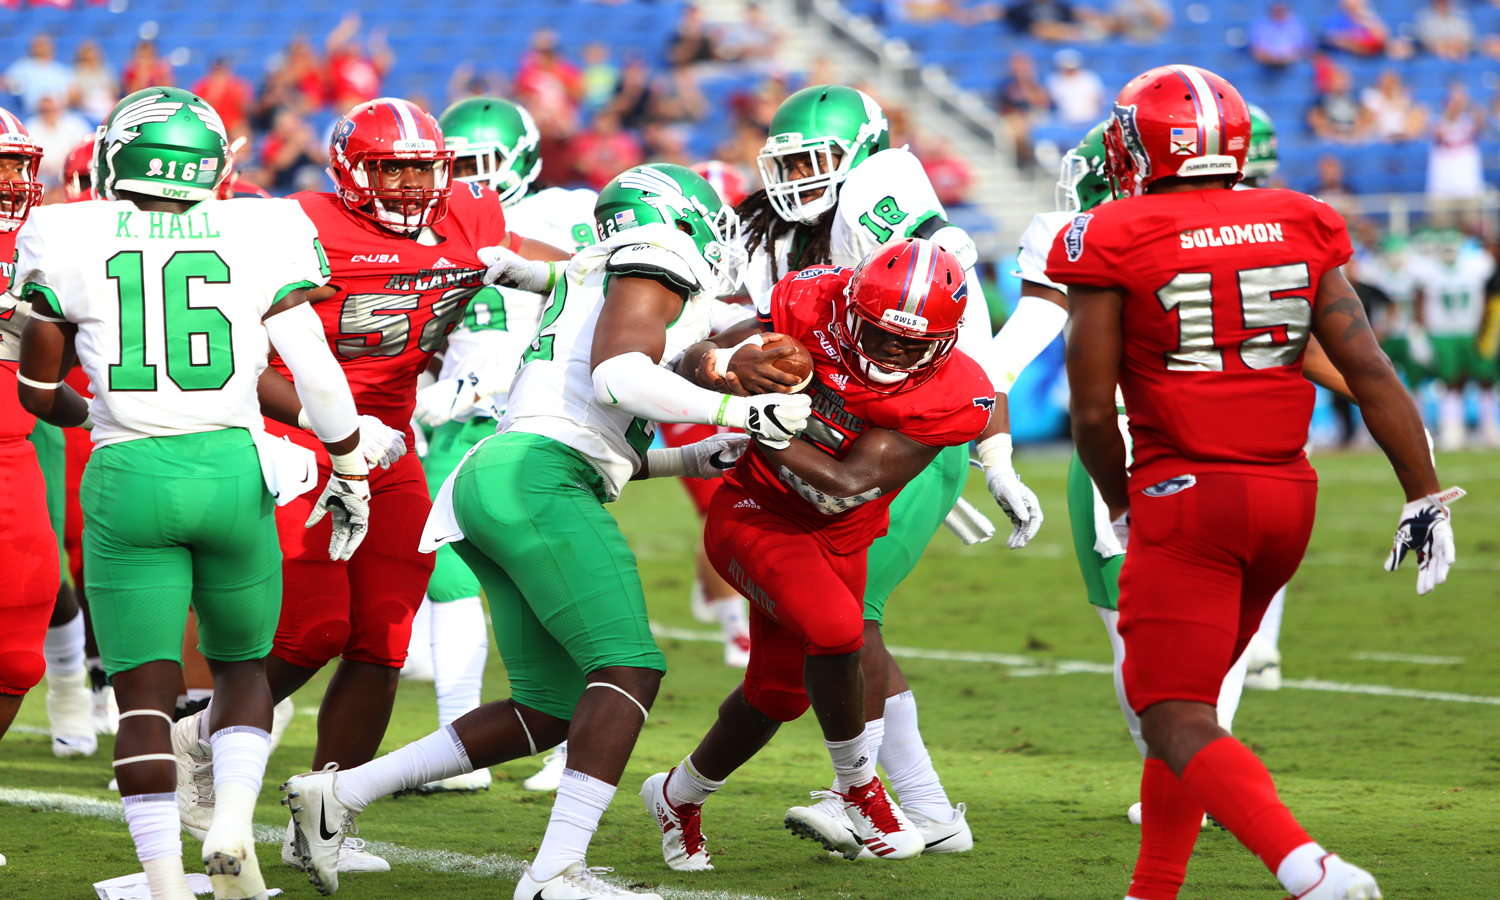 FAU sophomore running back Devin Singletary (5) gets tackled by North Texas redshirt junior linebacker E.J. Ejiya (22) during their game last Saturday. FAU went on to beat the Mean Green 69-31. Alexander Rodriguez | Photo Editor